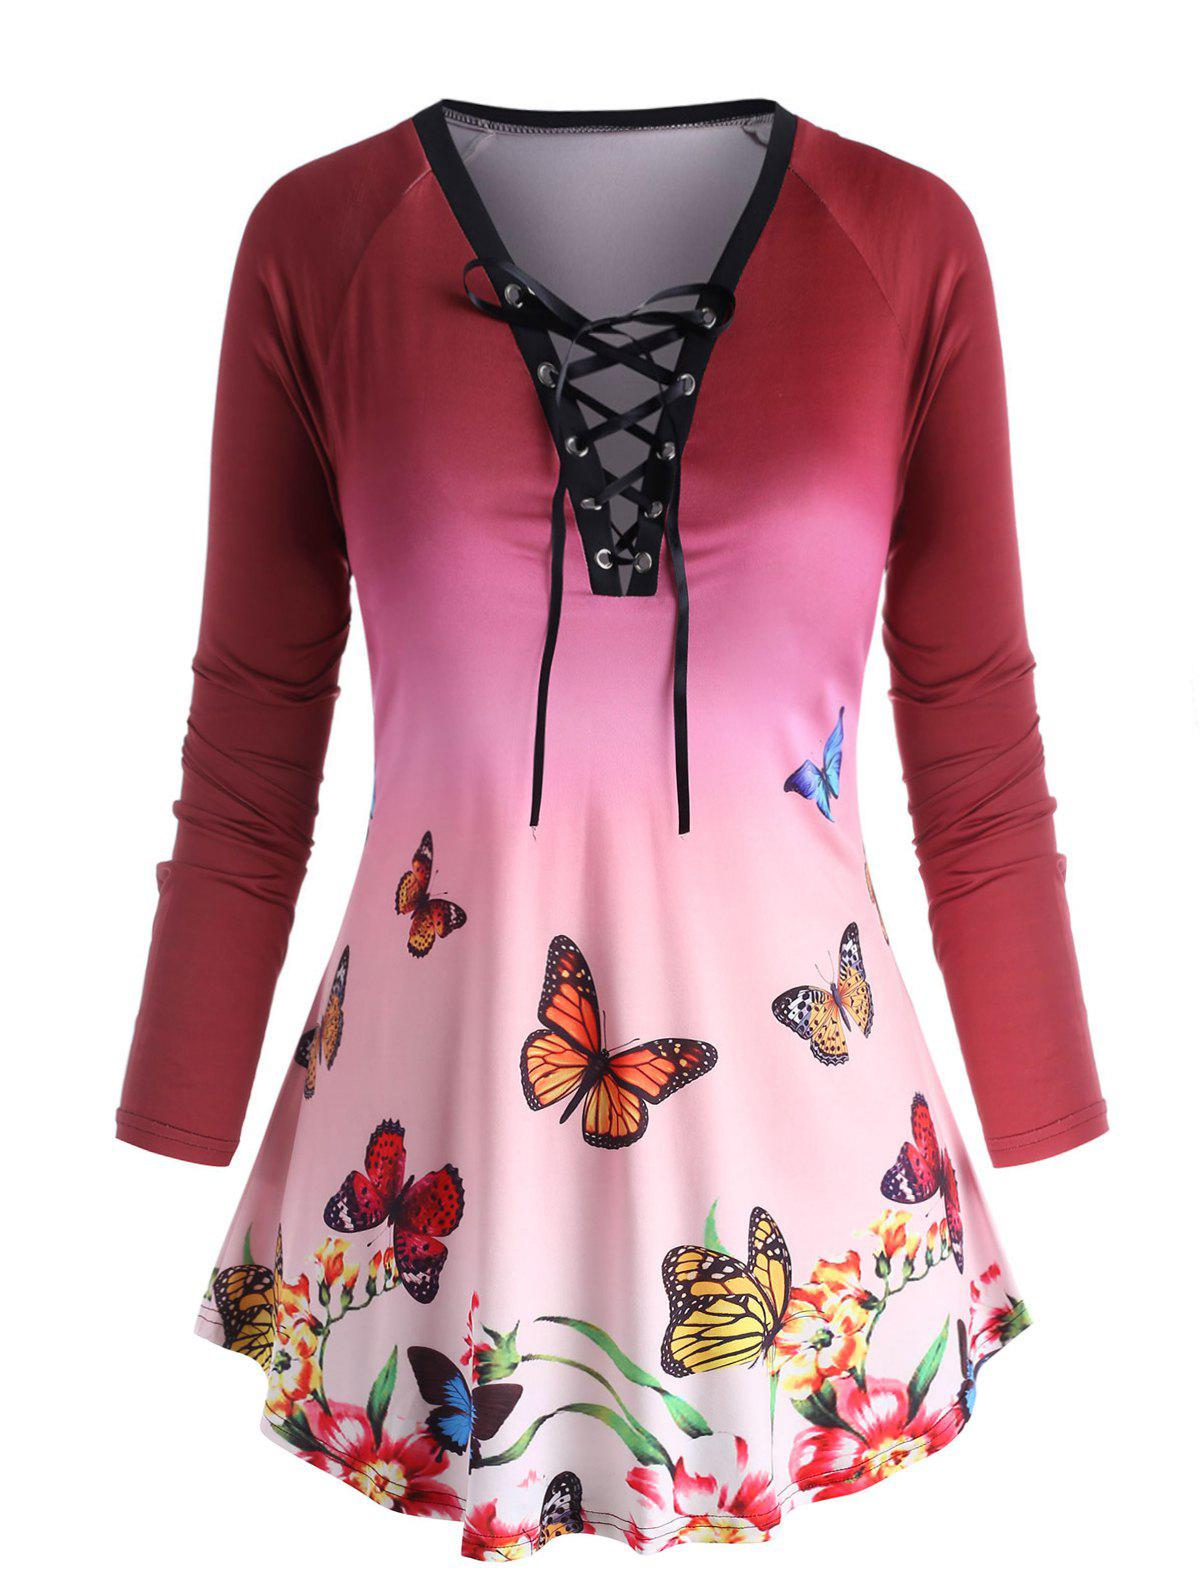 Plus Size Lace Up Butterfly Print T Shirt - DEEP RED 5X